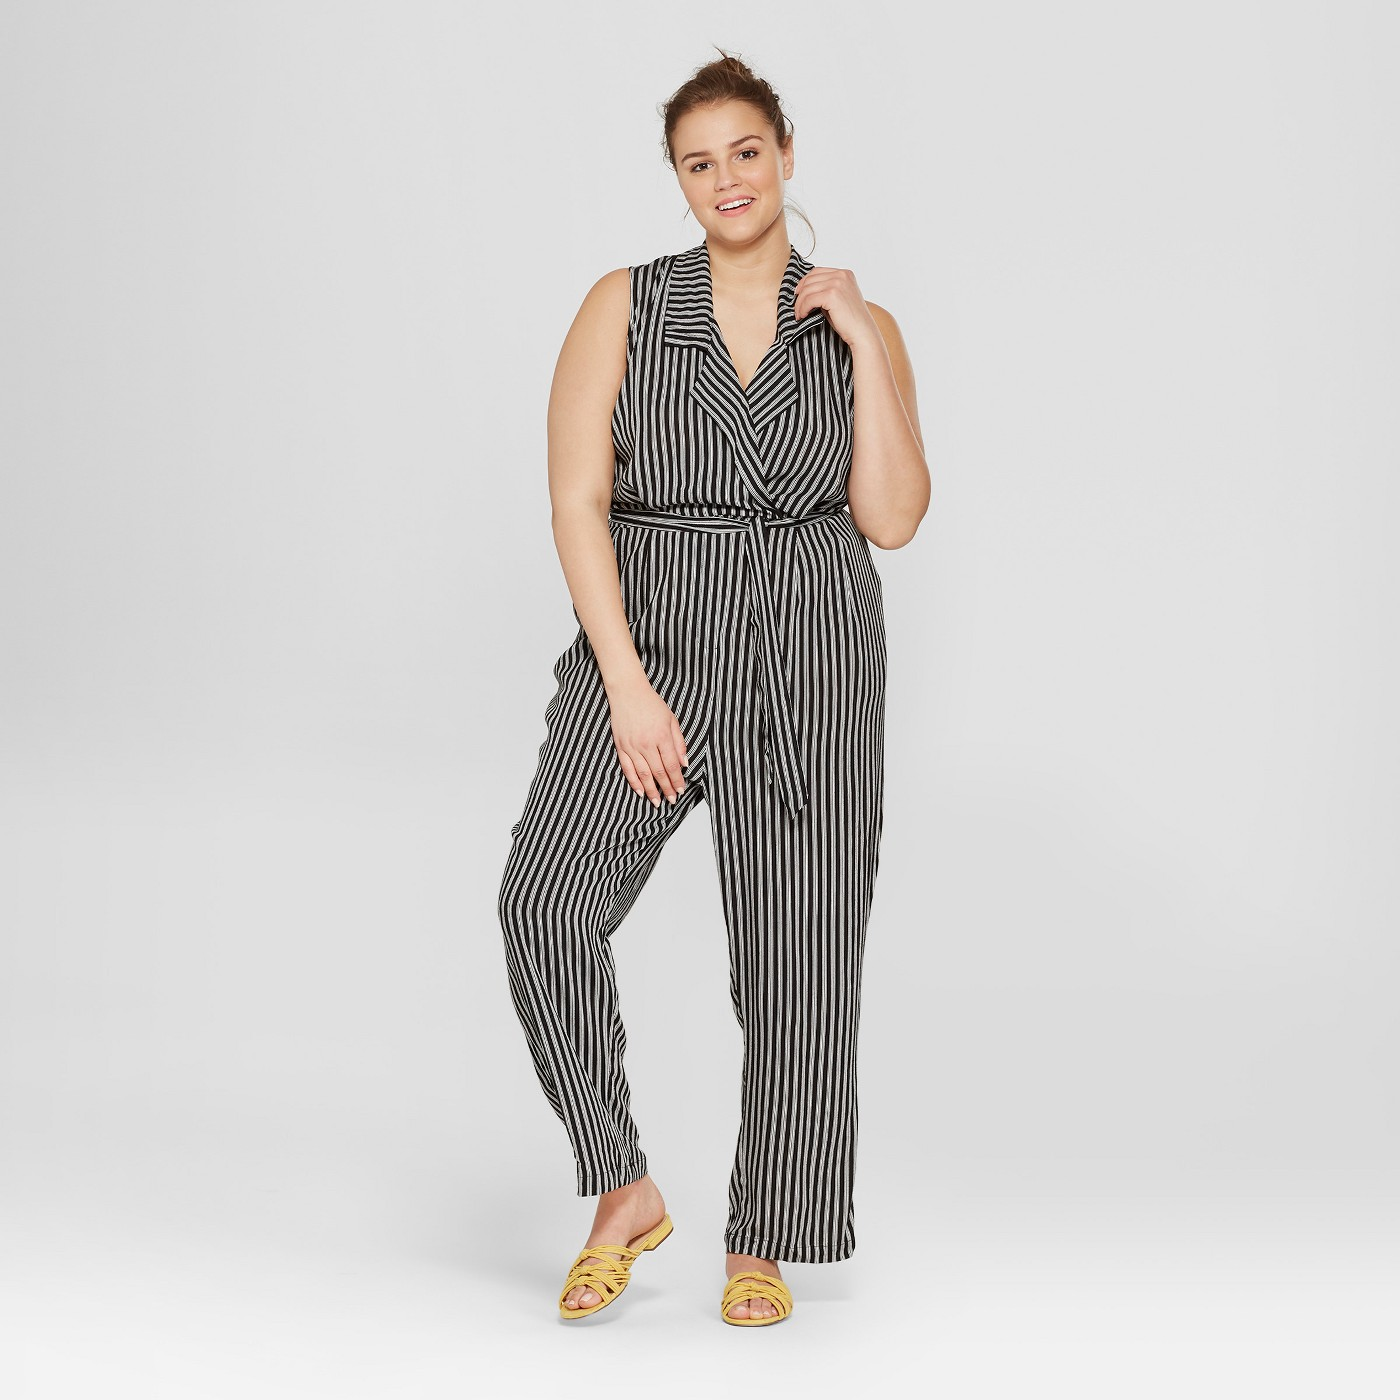 New Summer Plus Size Styles From Who What Wear Target Collection ...